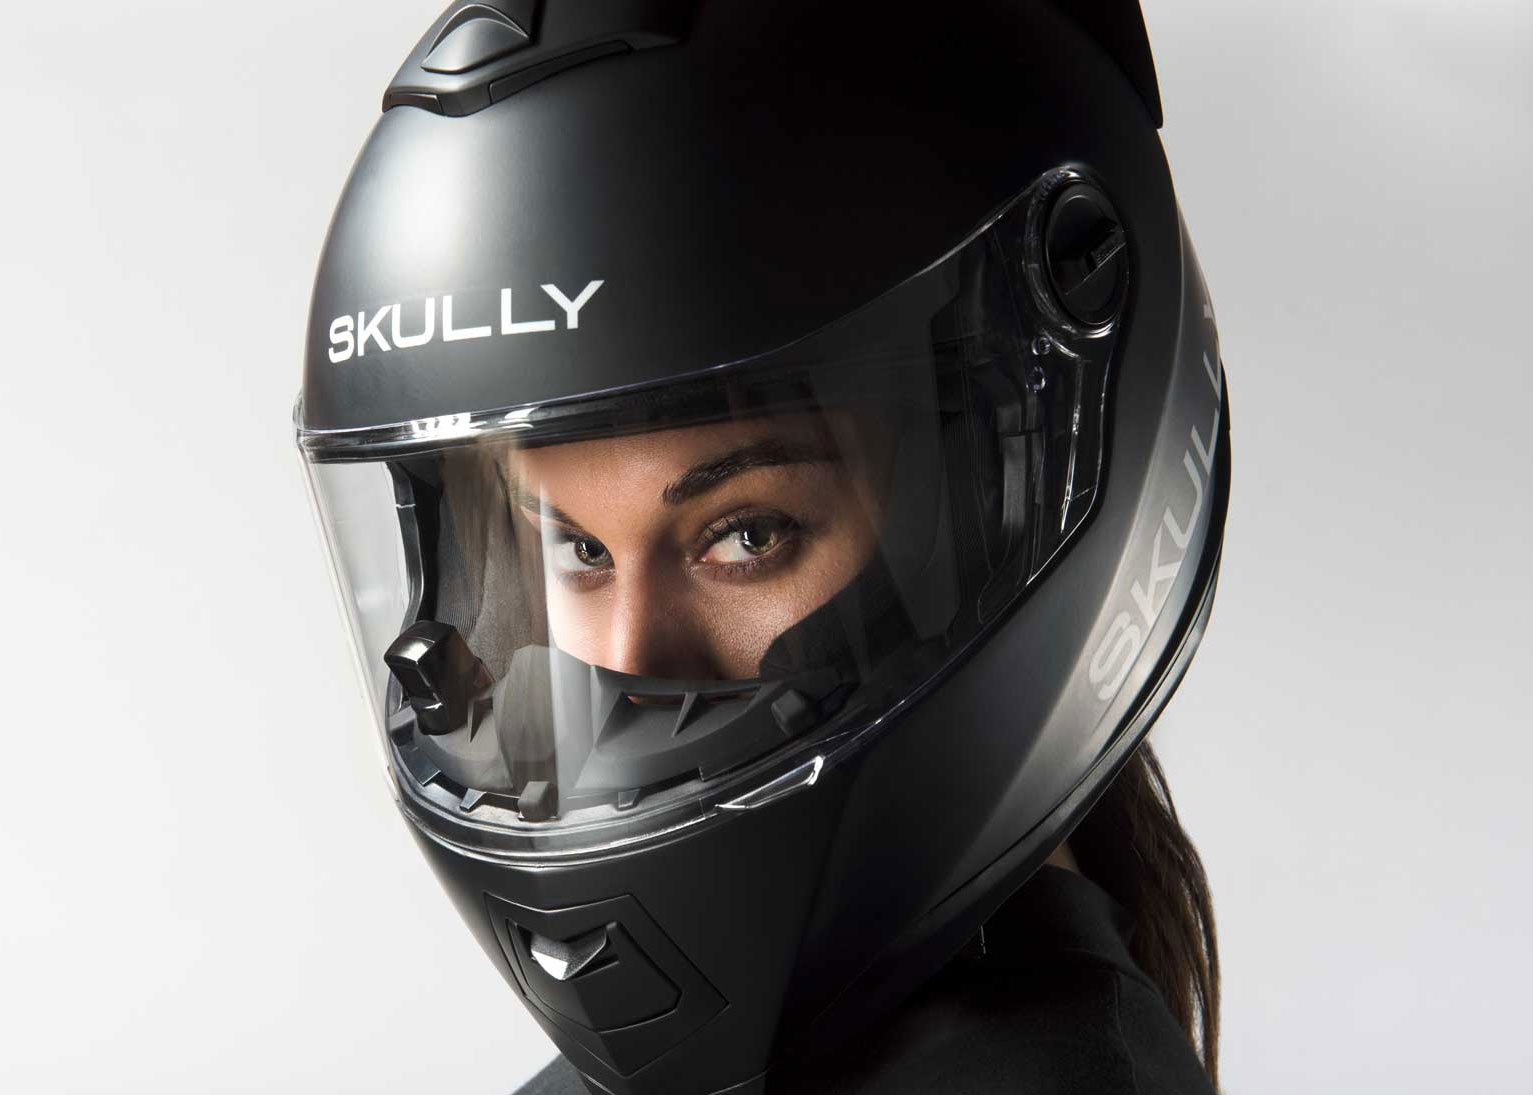 Skully Motorcycle Helmet